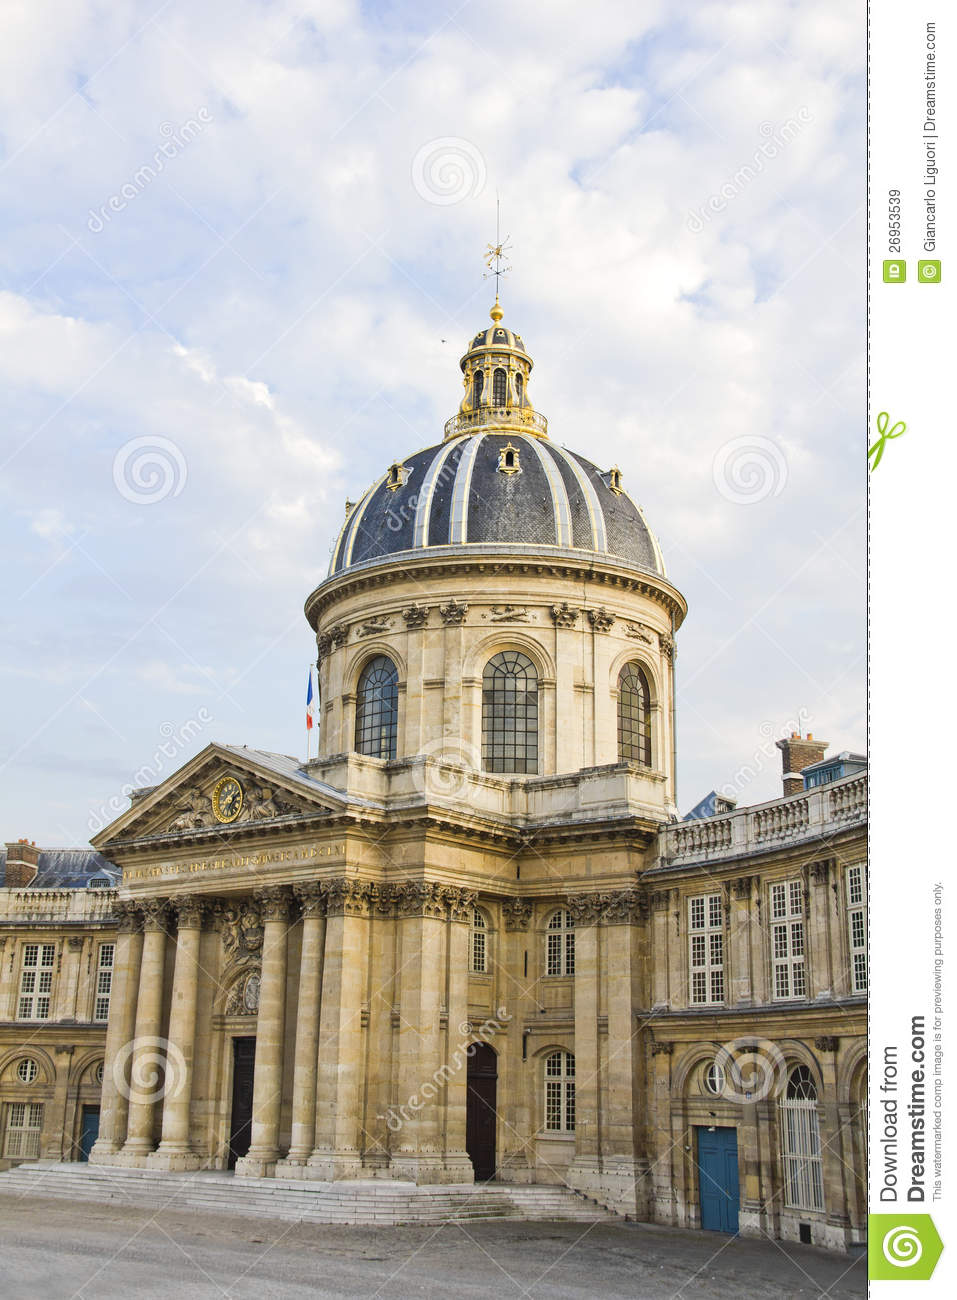 french institute institut de france paris stock image. Black Bedroom Furniture Sets. Home Design Ideas